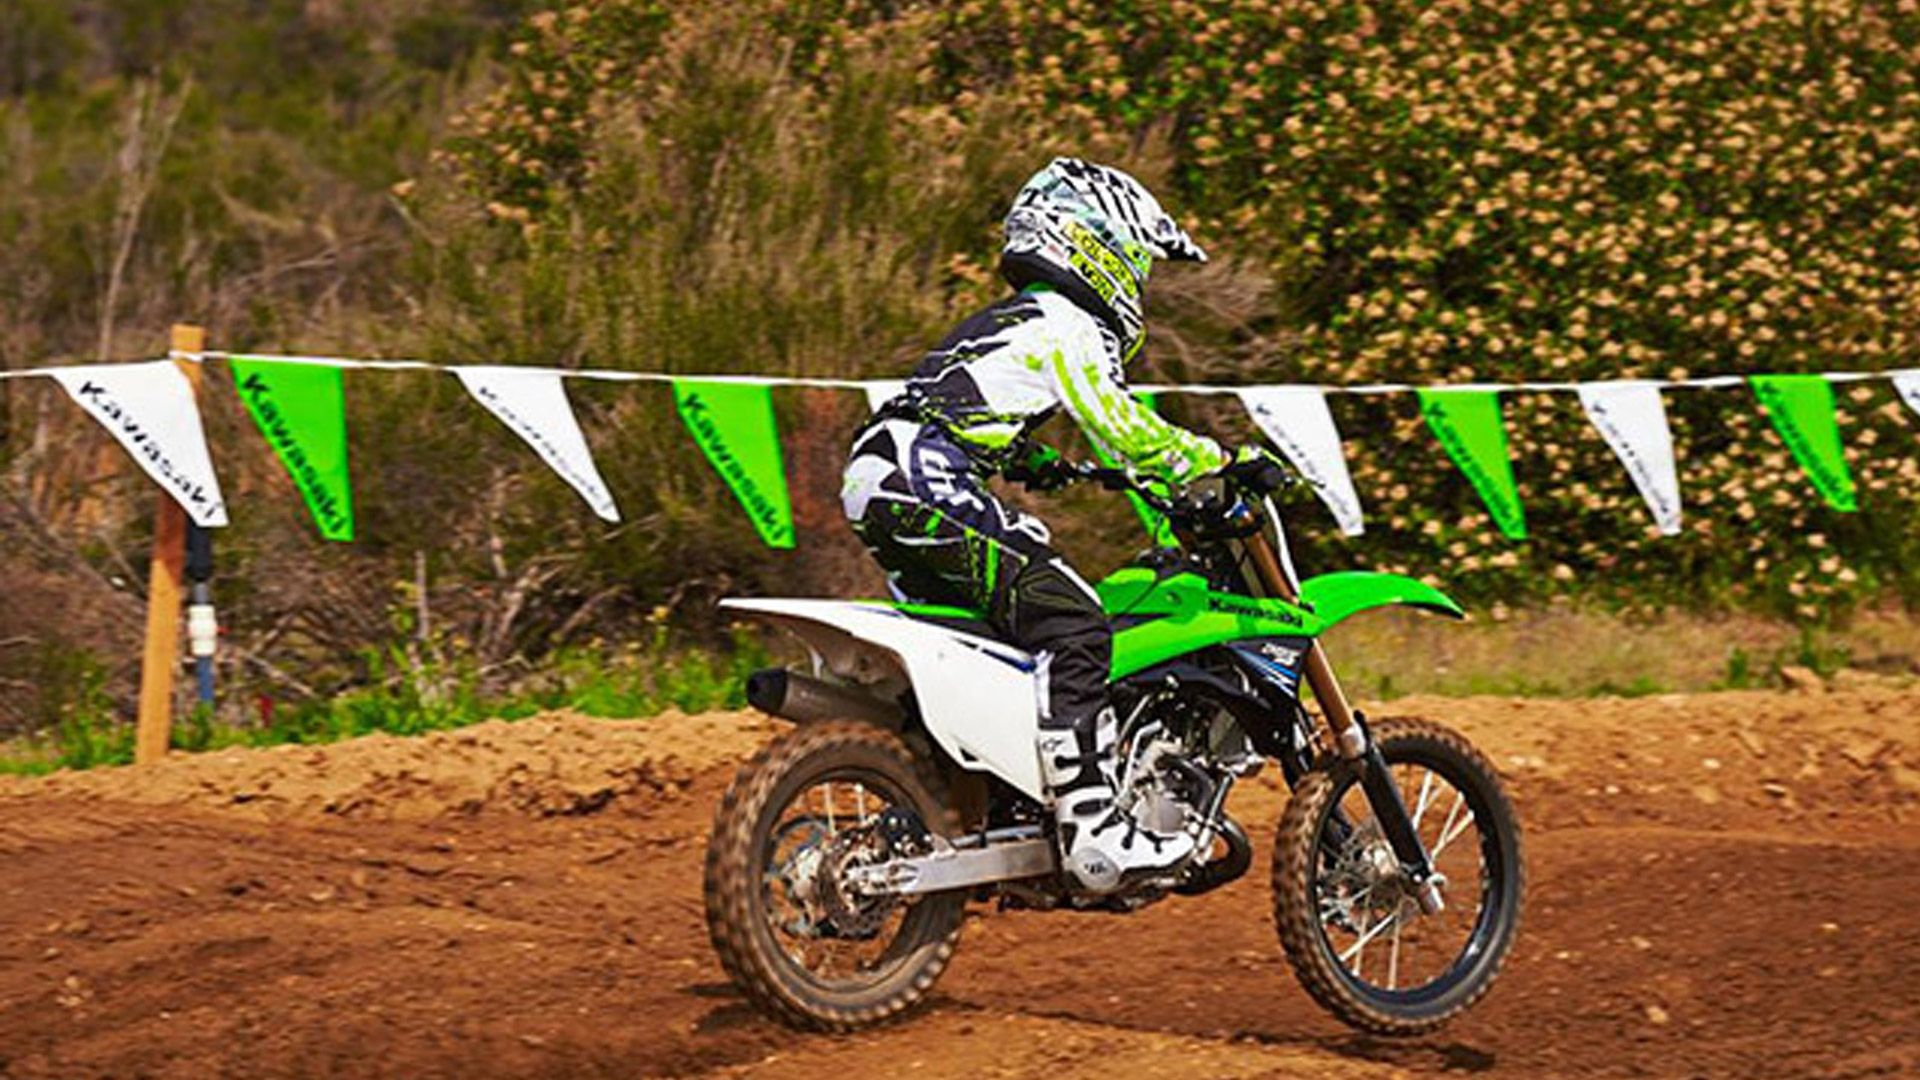 medium resolution of kx kawasaki 85 2014 kawasaki kx 85 cc powerful 2014 kawasaki kx 85